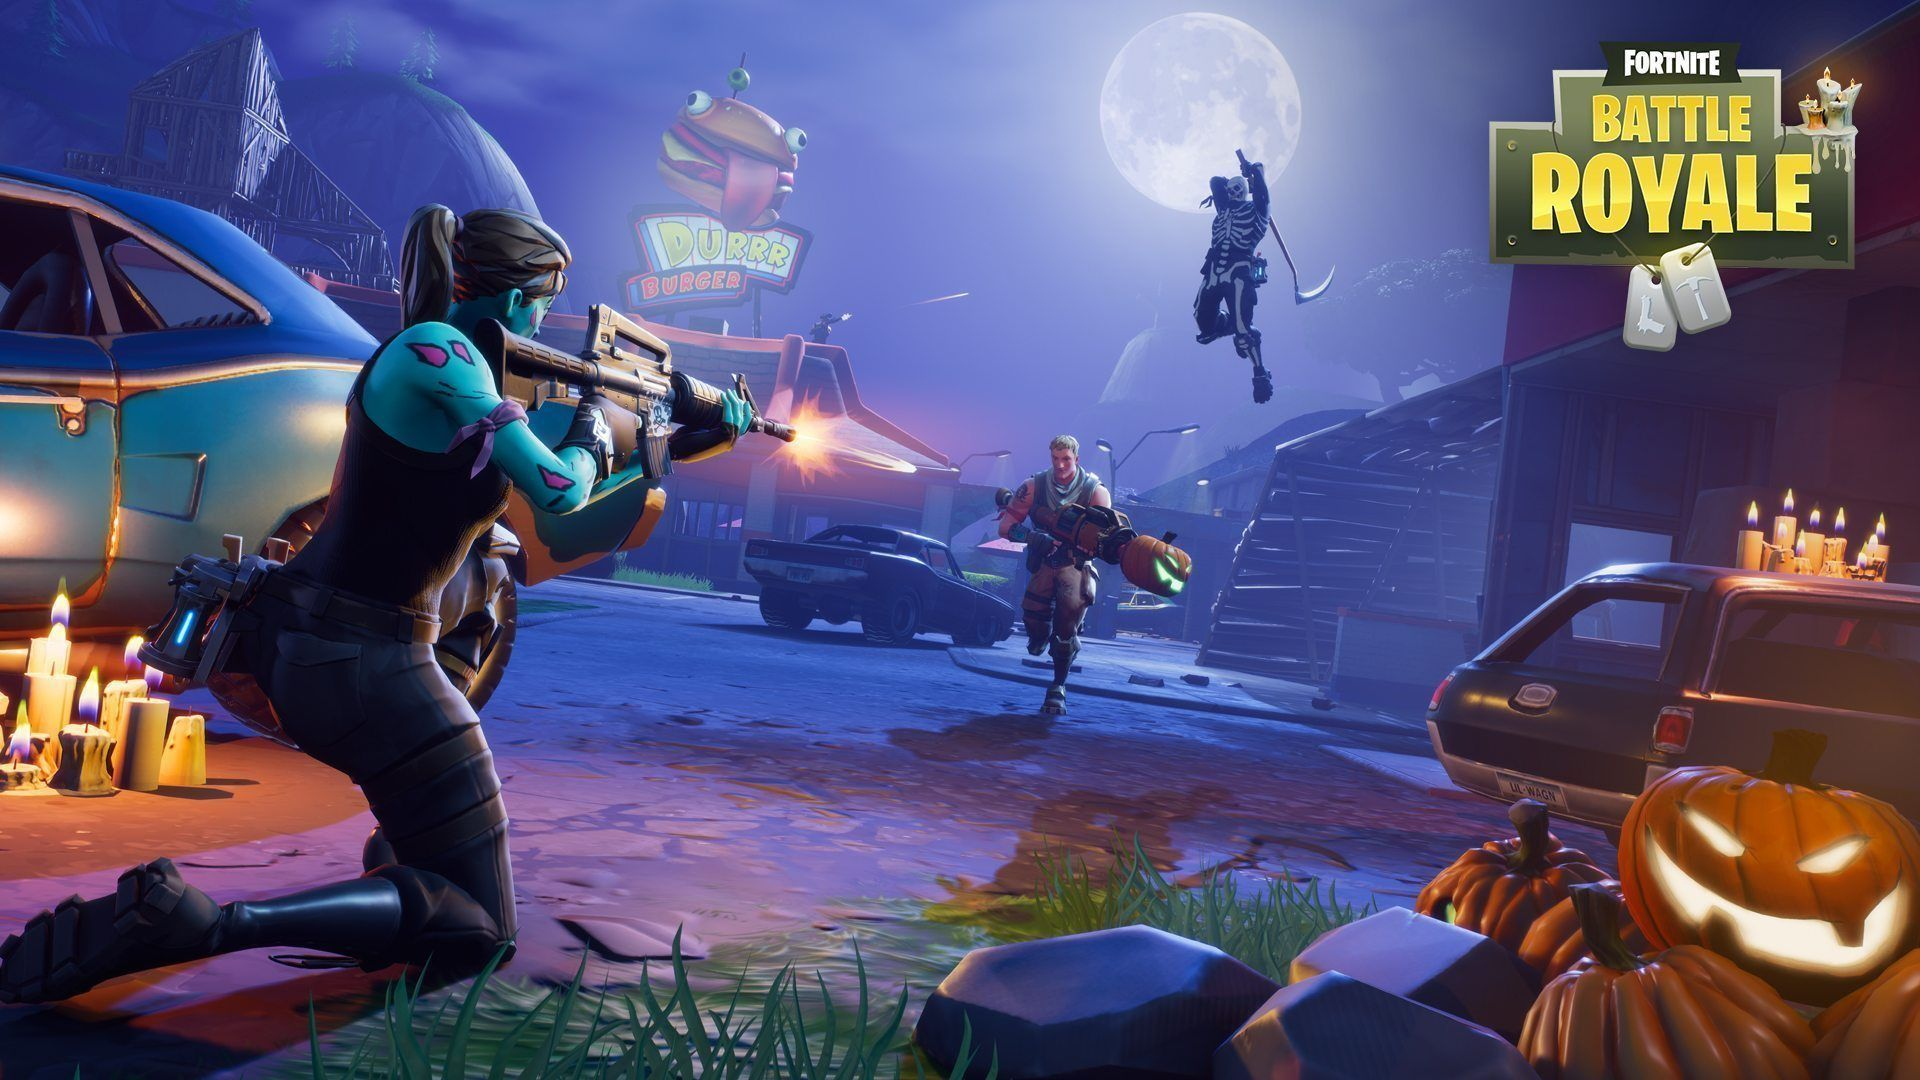 Fortnite Christmas Desktop Wallpapers   Top Fortnite 1920x1080